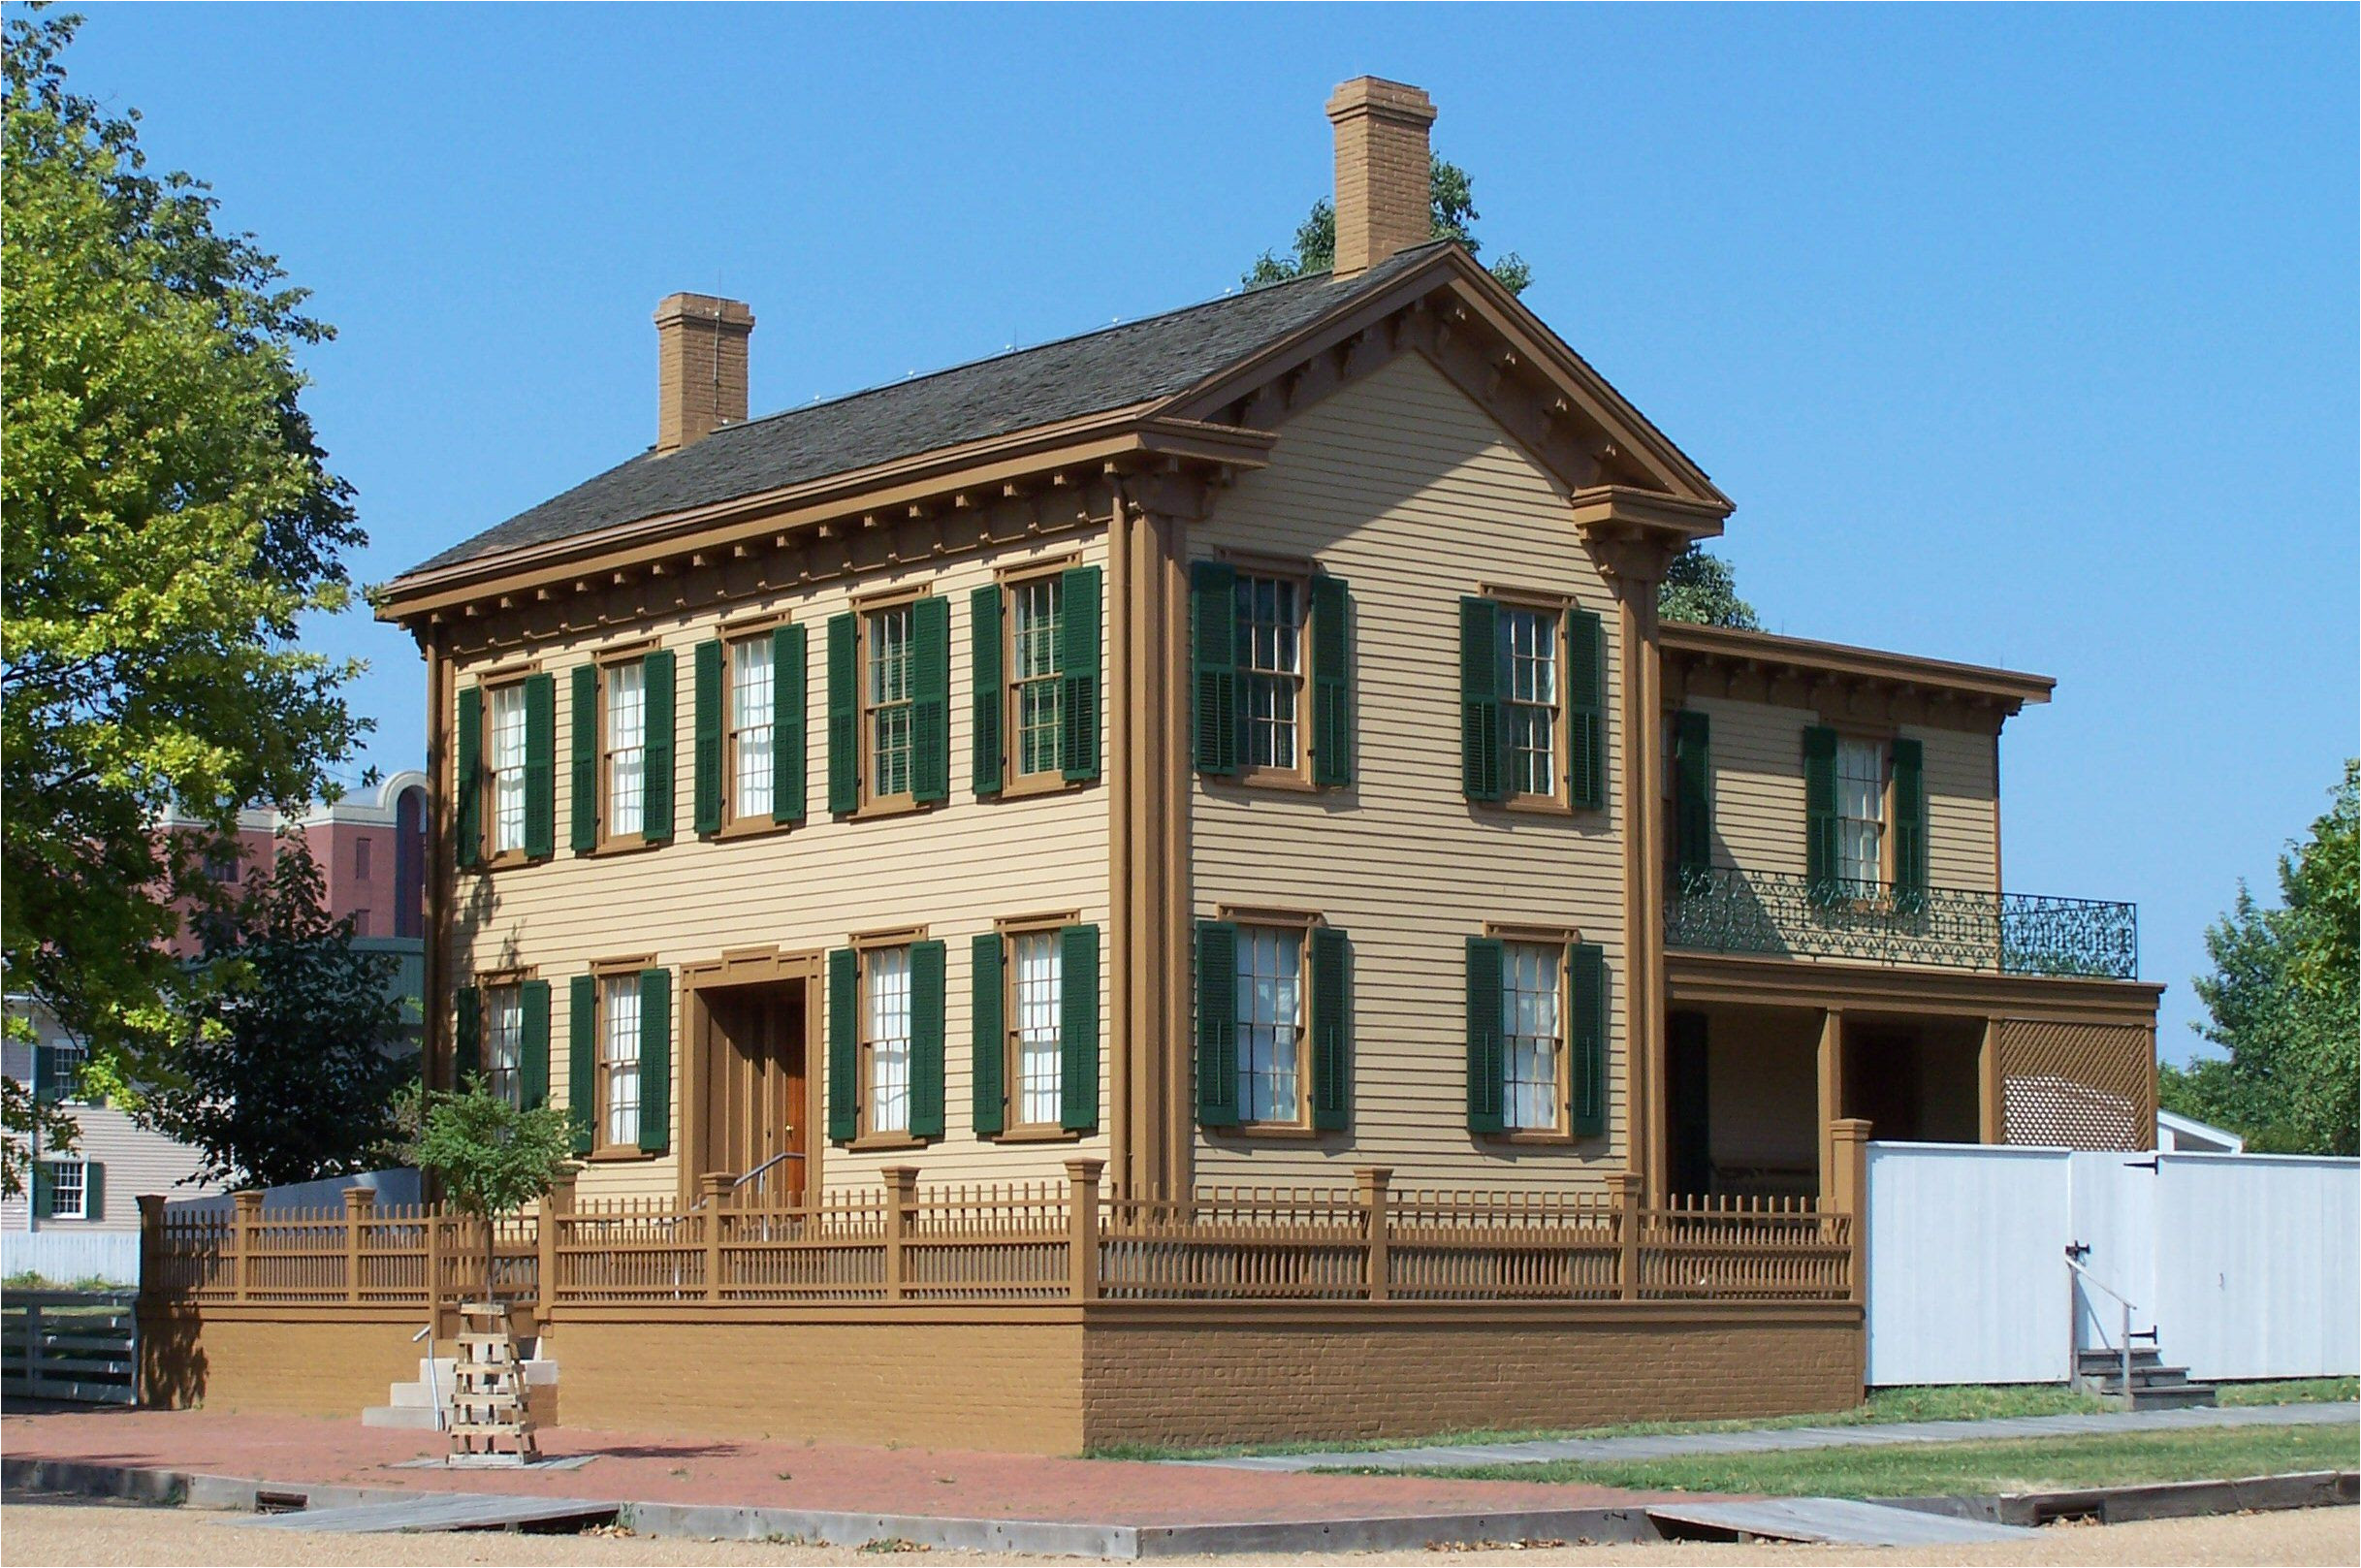 abraham lincoln s home in springfield illinois was not always two stories